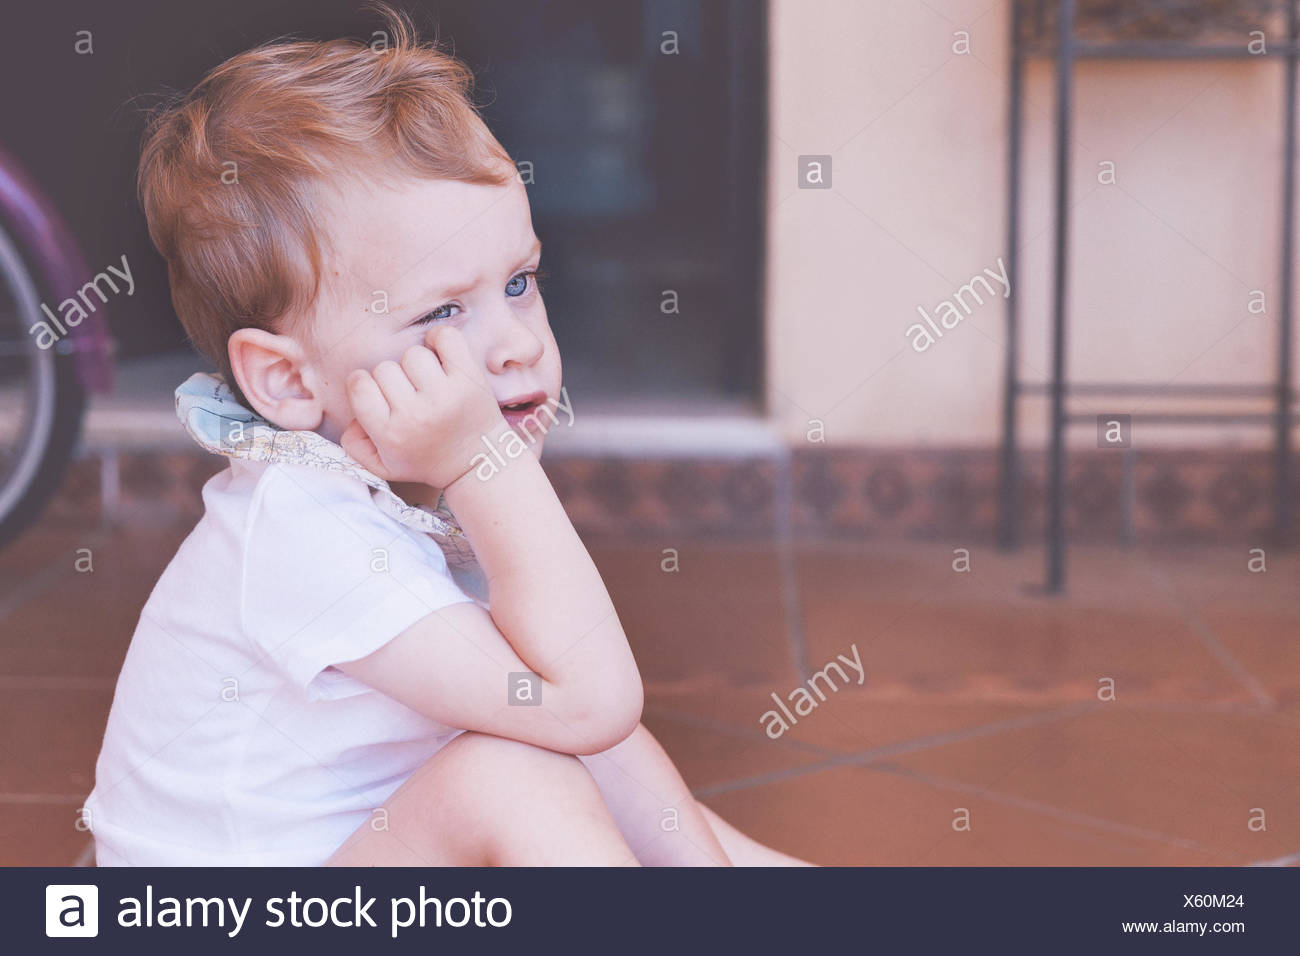 Boy sitting on floor with hand on chin - Stock Image